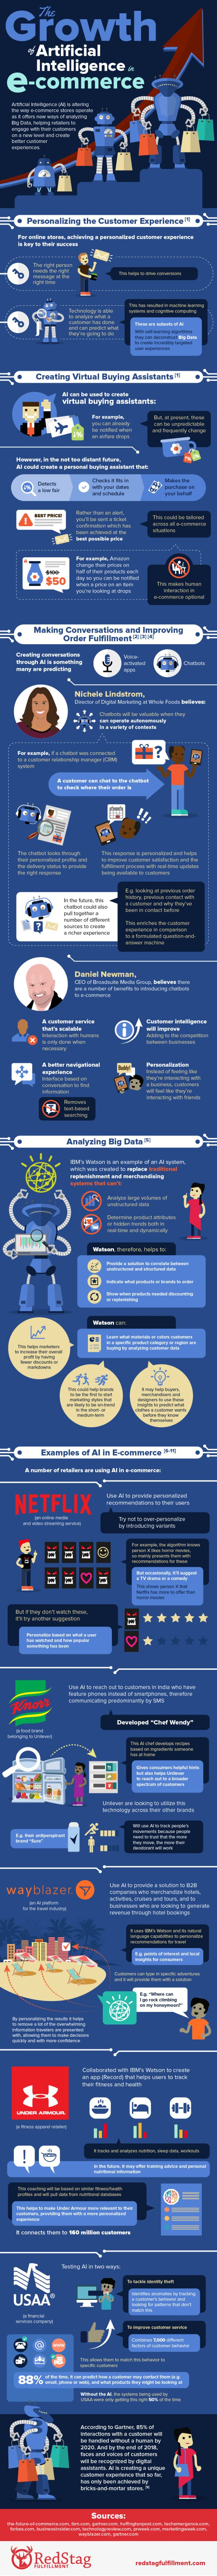 How Is Artificial Intelligence Altering The Way E-Commerce Stores Operate? #infographic